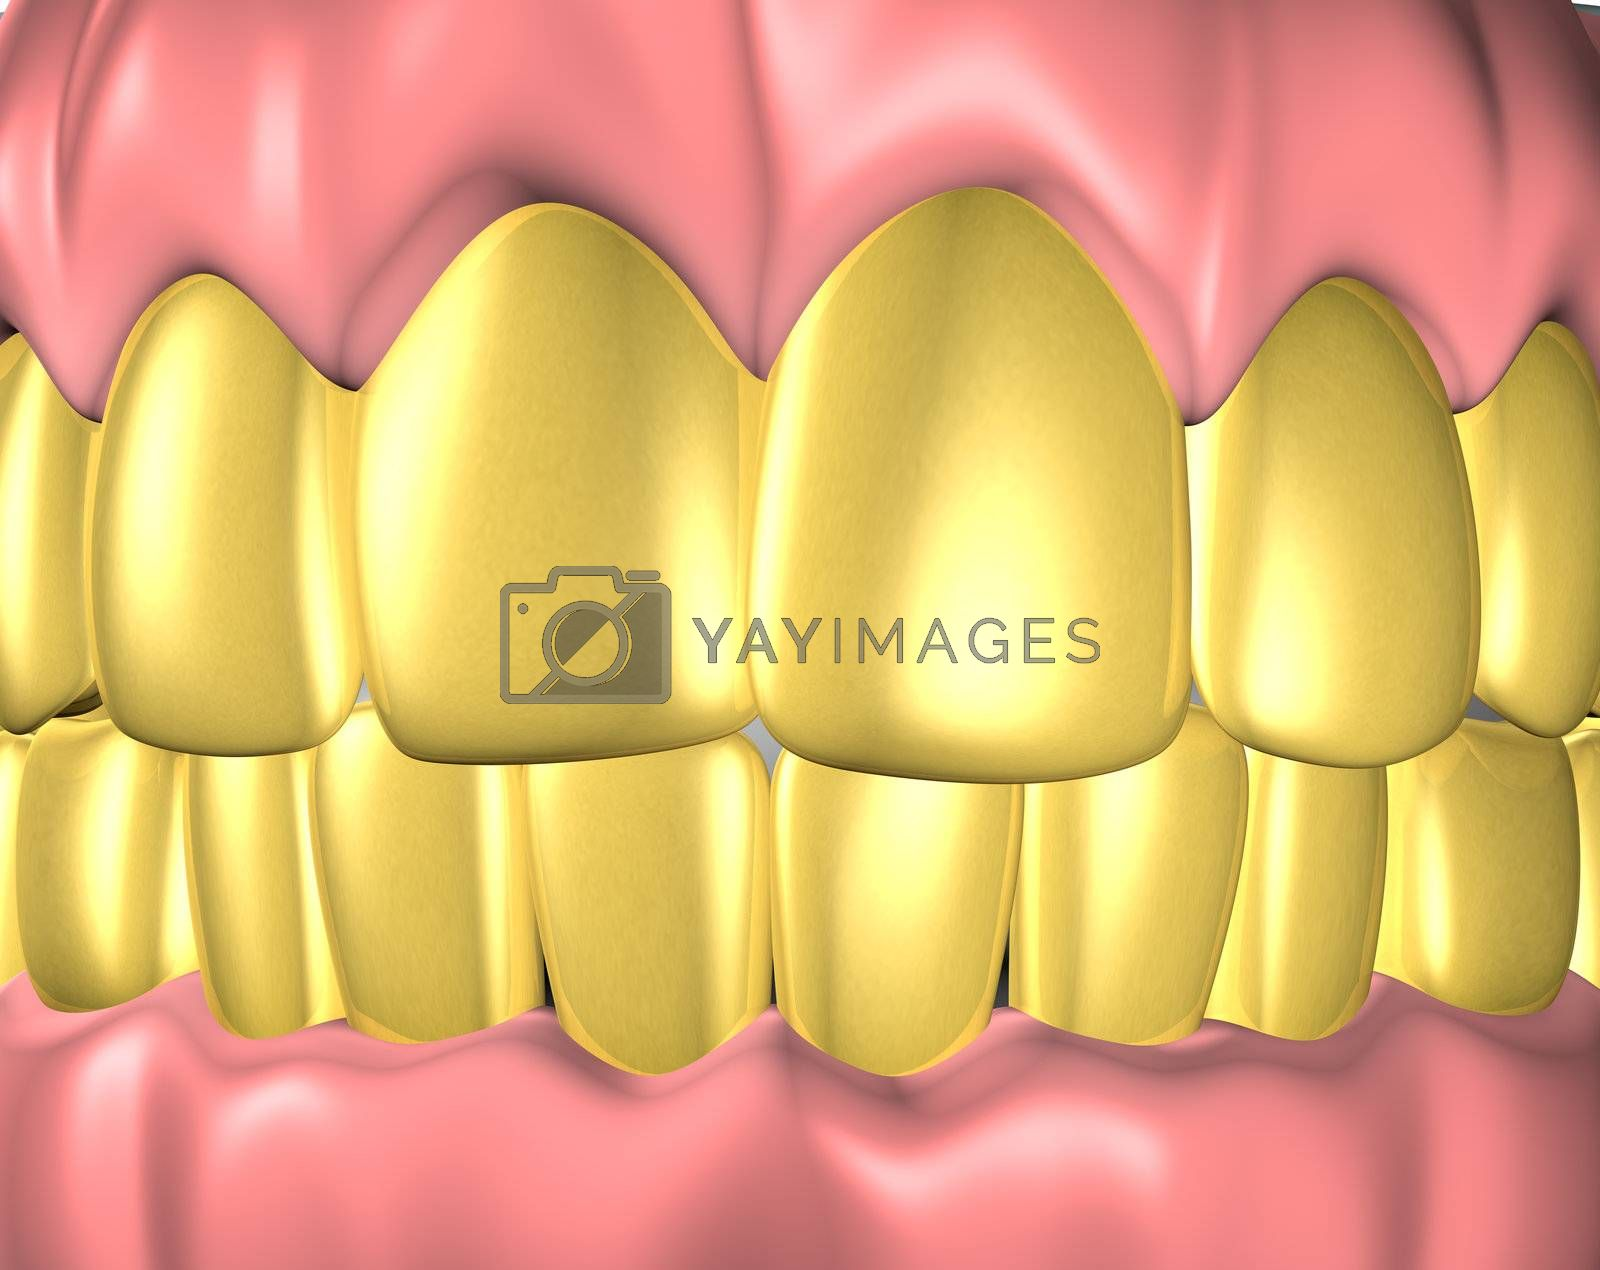 3d image of teeth with gold teeth